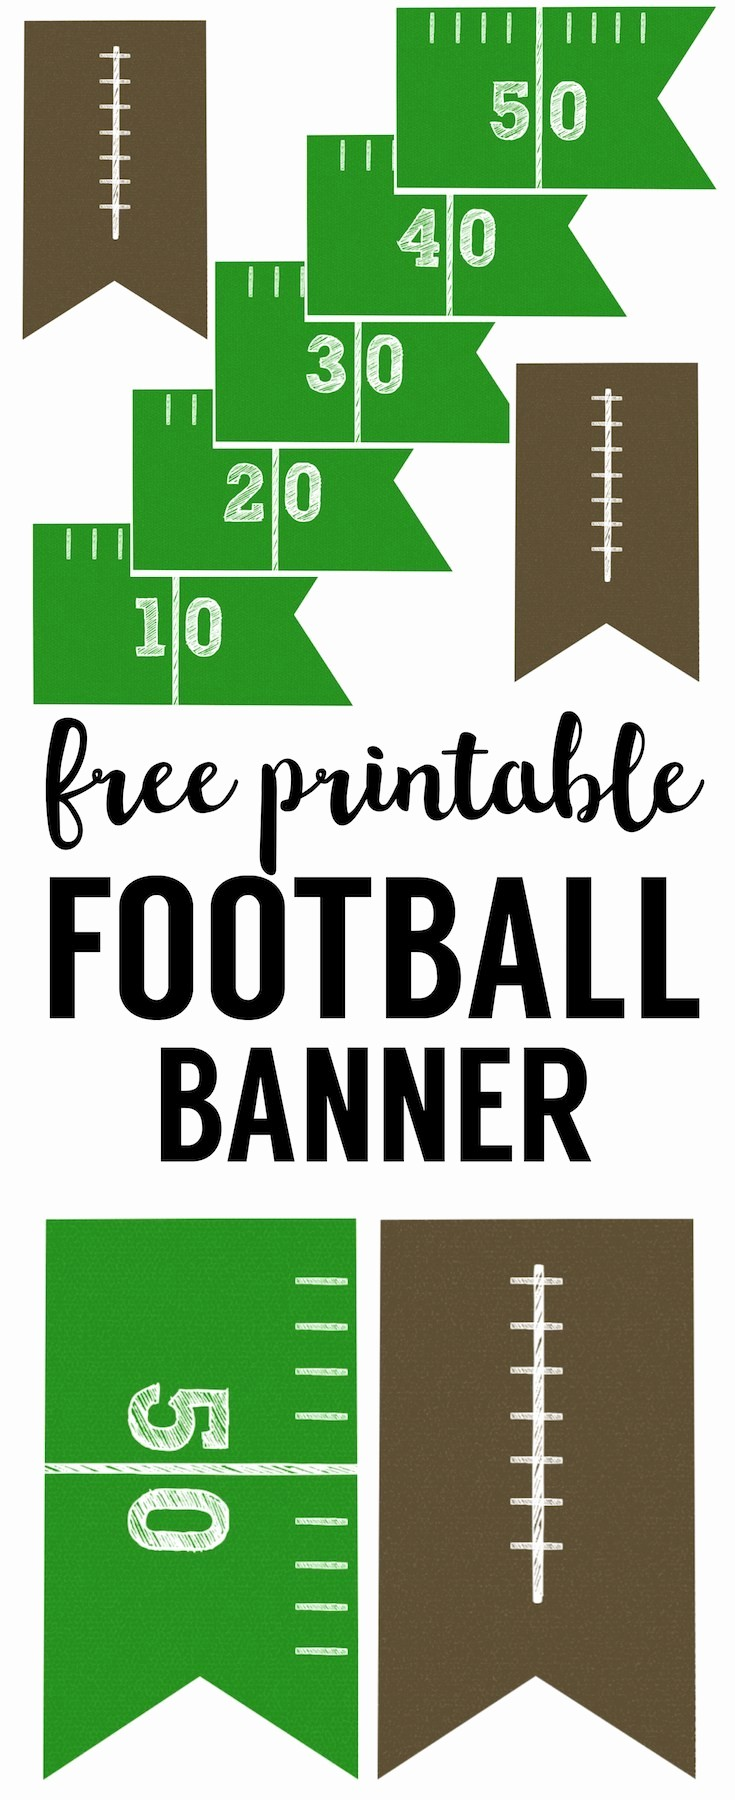 It's A Boy Banner Printable Luxury Football Banner Free Printable Football Party Paper